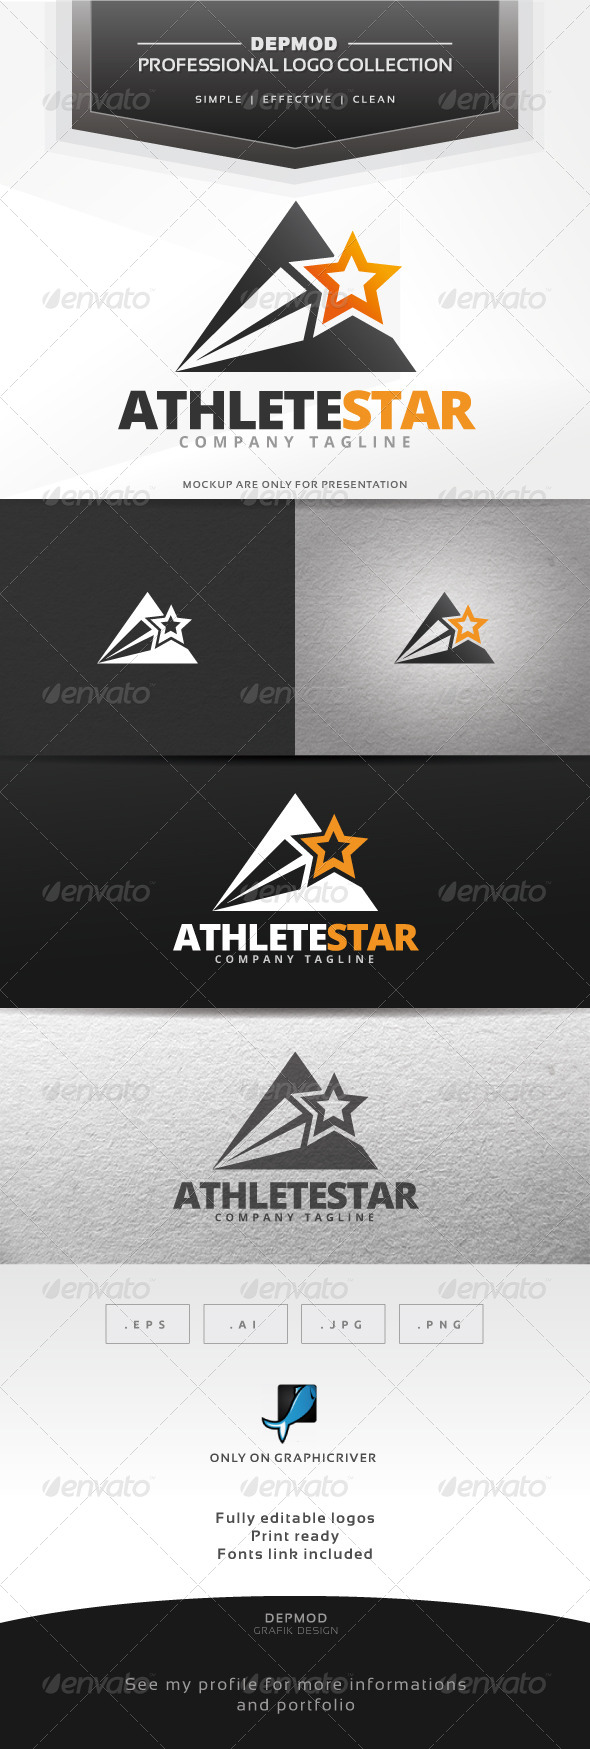 Athlete Star Logo